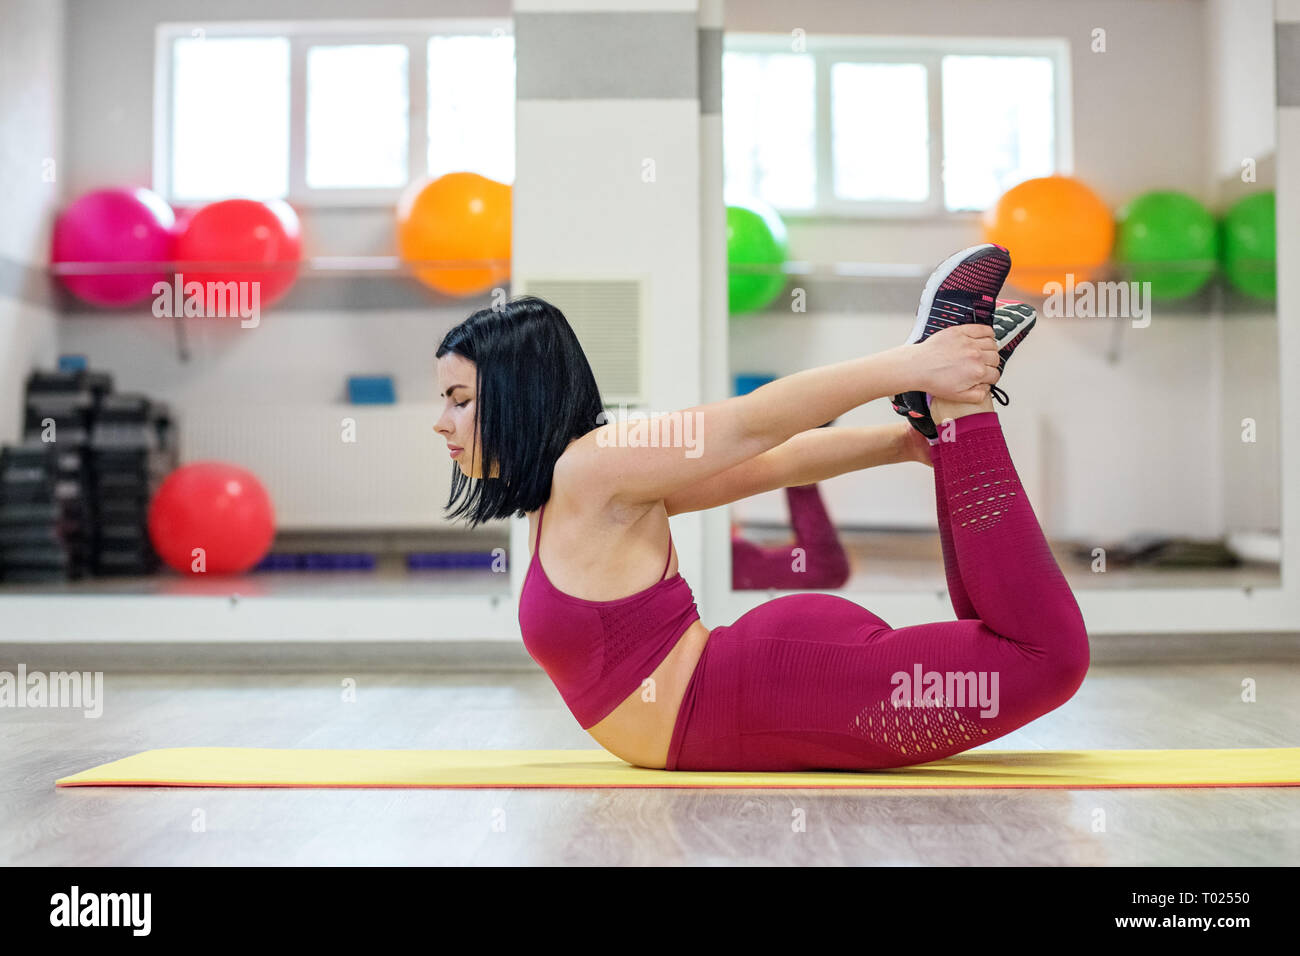 Adult girl is engaged in stretching in the gym. The concept of sports, a healthy lifestyle, losing weight. - Stock Image